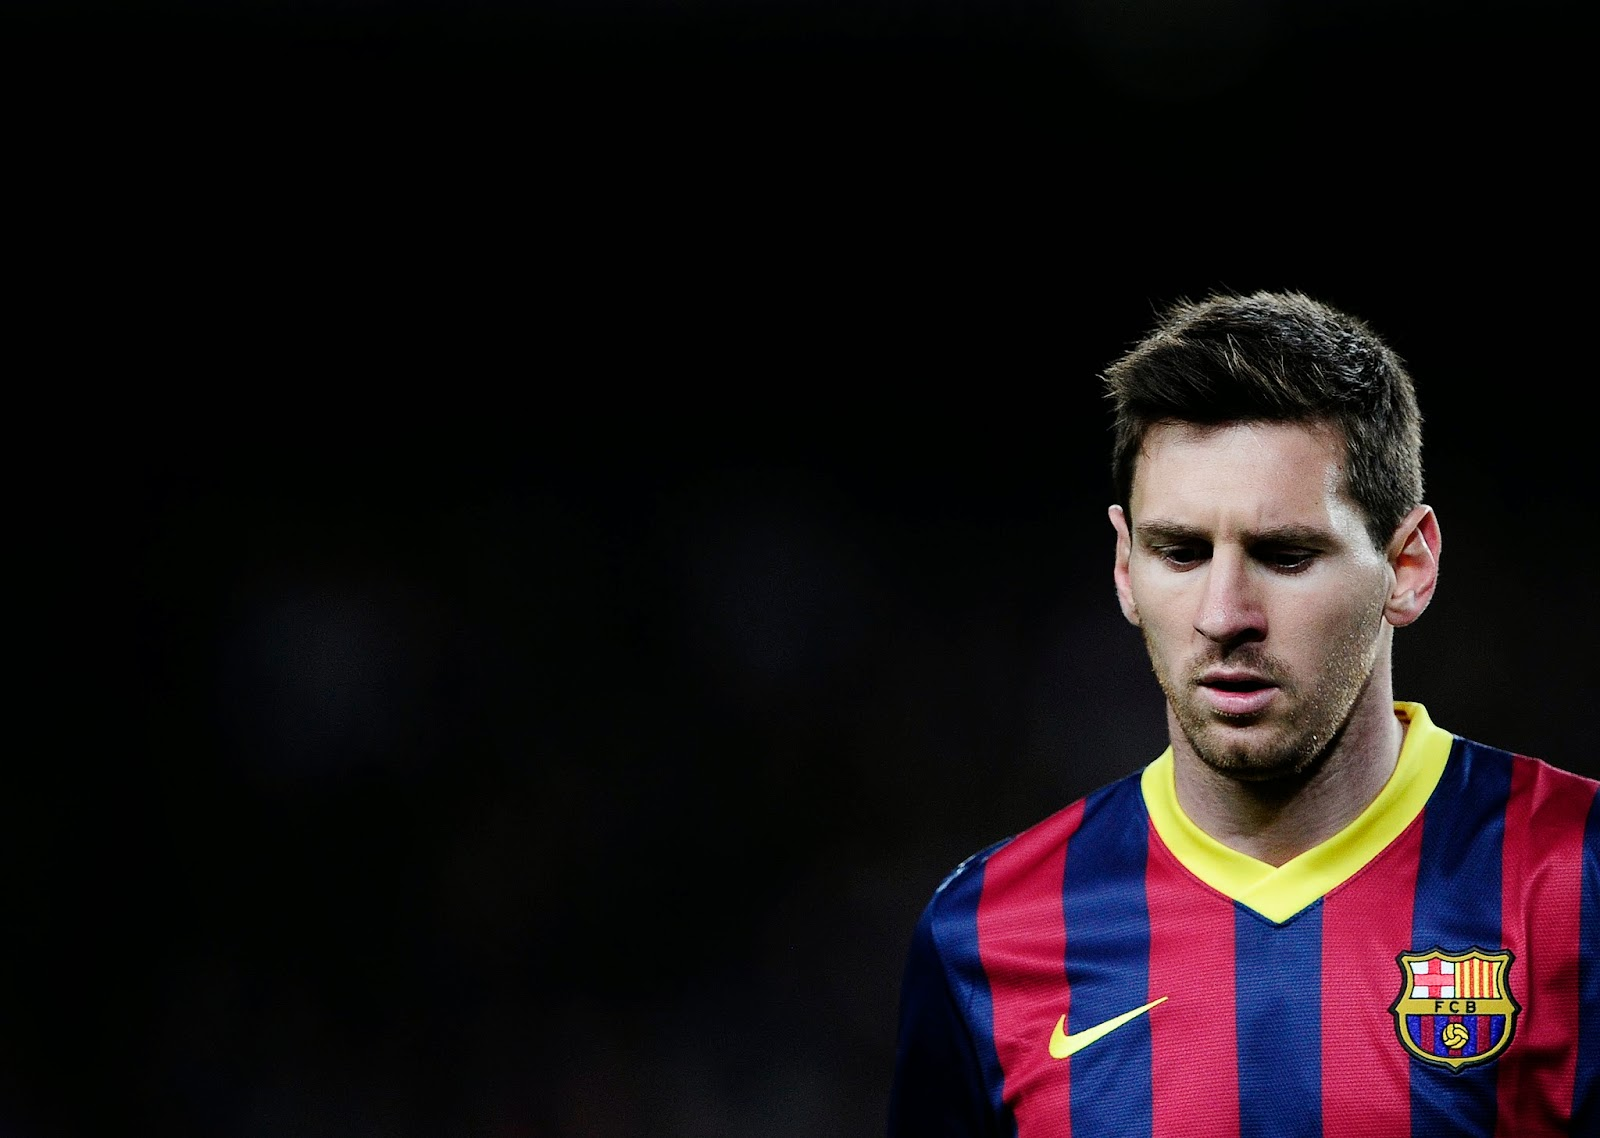 Argentina, Barcelona, Cristiano Ronaldo, FIFA, Football, Footballer, Highest Paid Soccer Players, Lionel Messi, Real Madrid, Soccer, Spanish league, Sports,